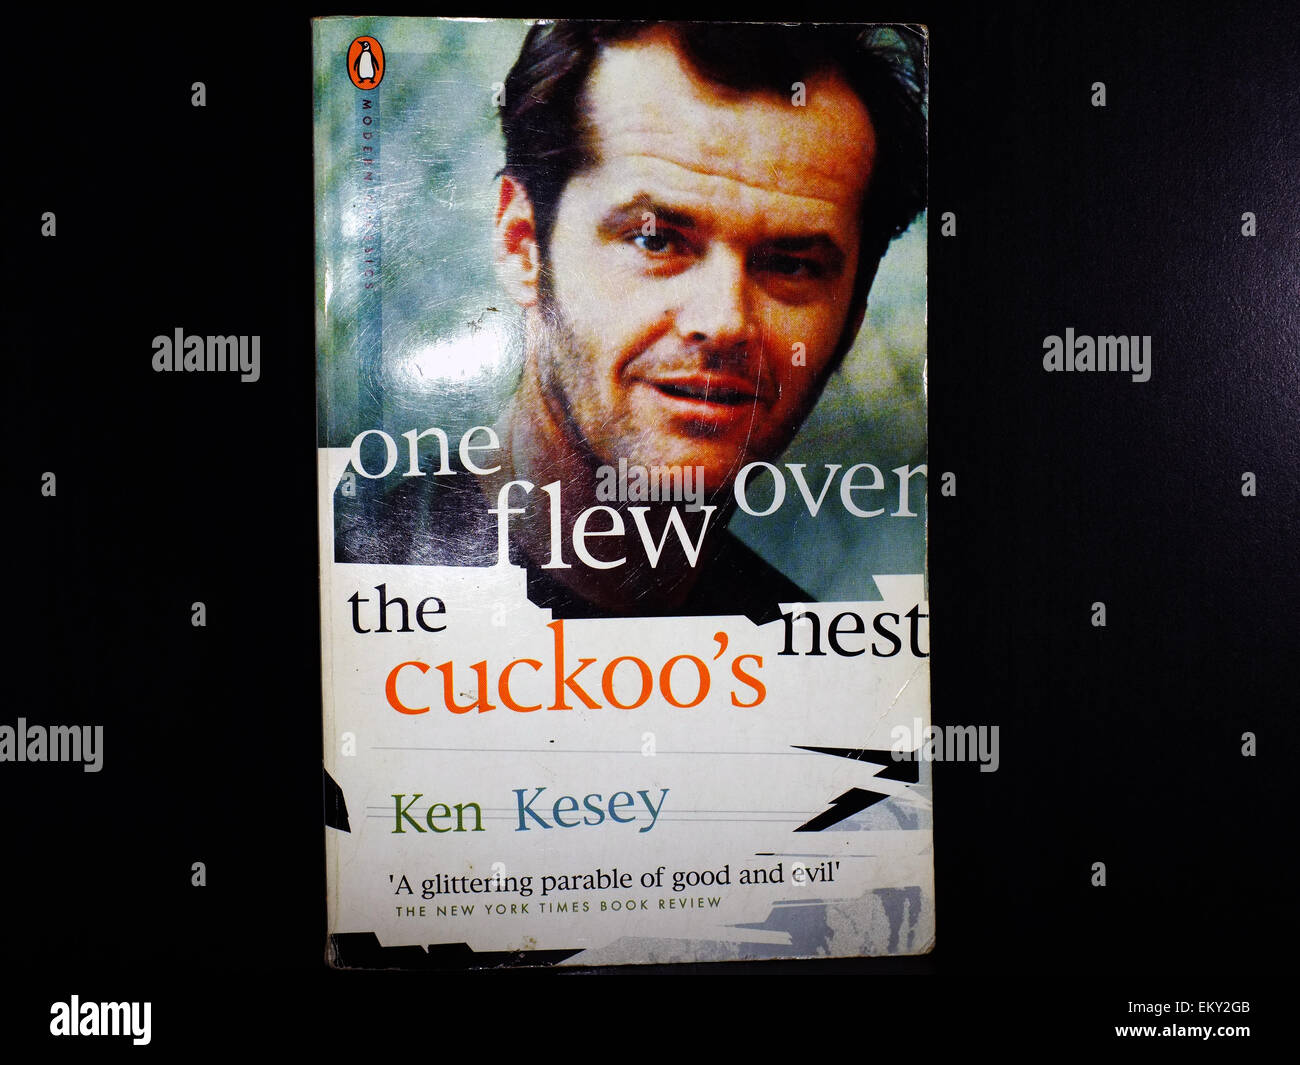 The front cover of the book One Flew Over the Cuckoo's Nest. Stock Photo